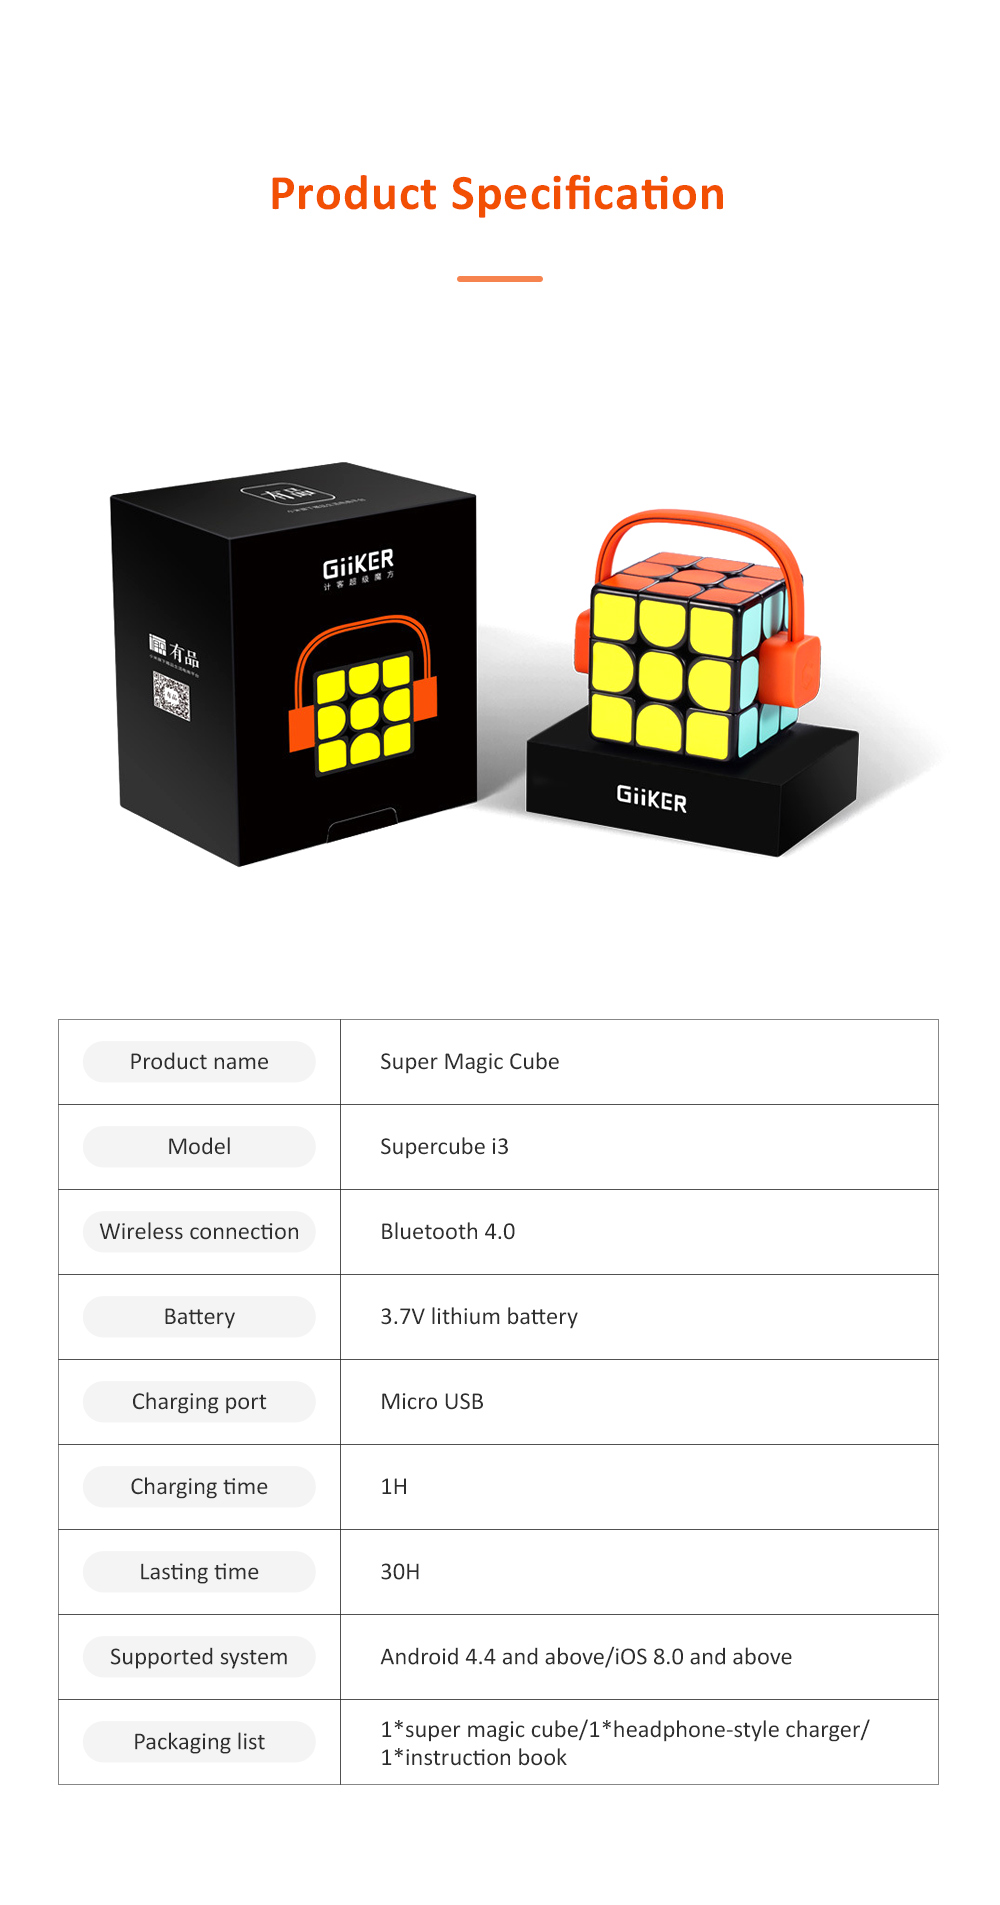 MI GIIKER Intelligent Super Cube Smart Magic Cube with Bluetooth Connection Real-time Sync for Education and Playing 7